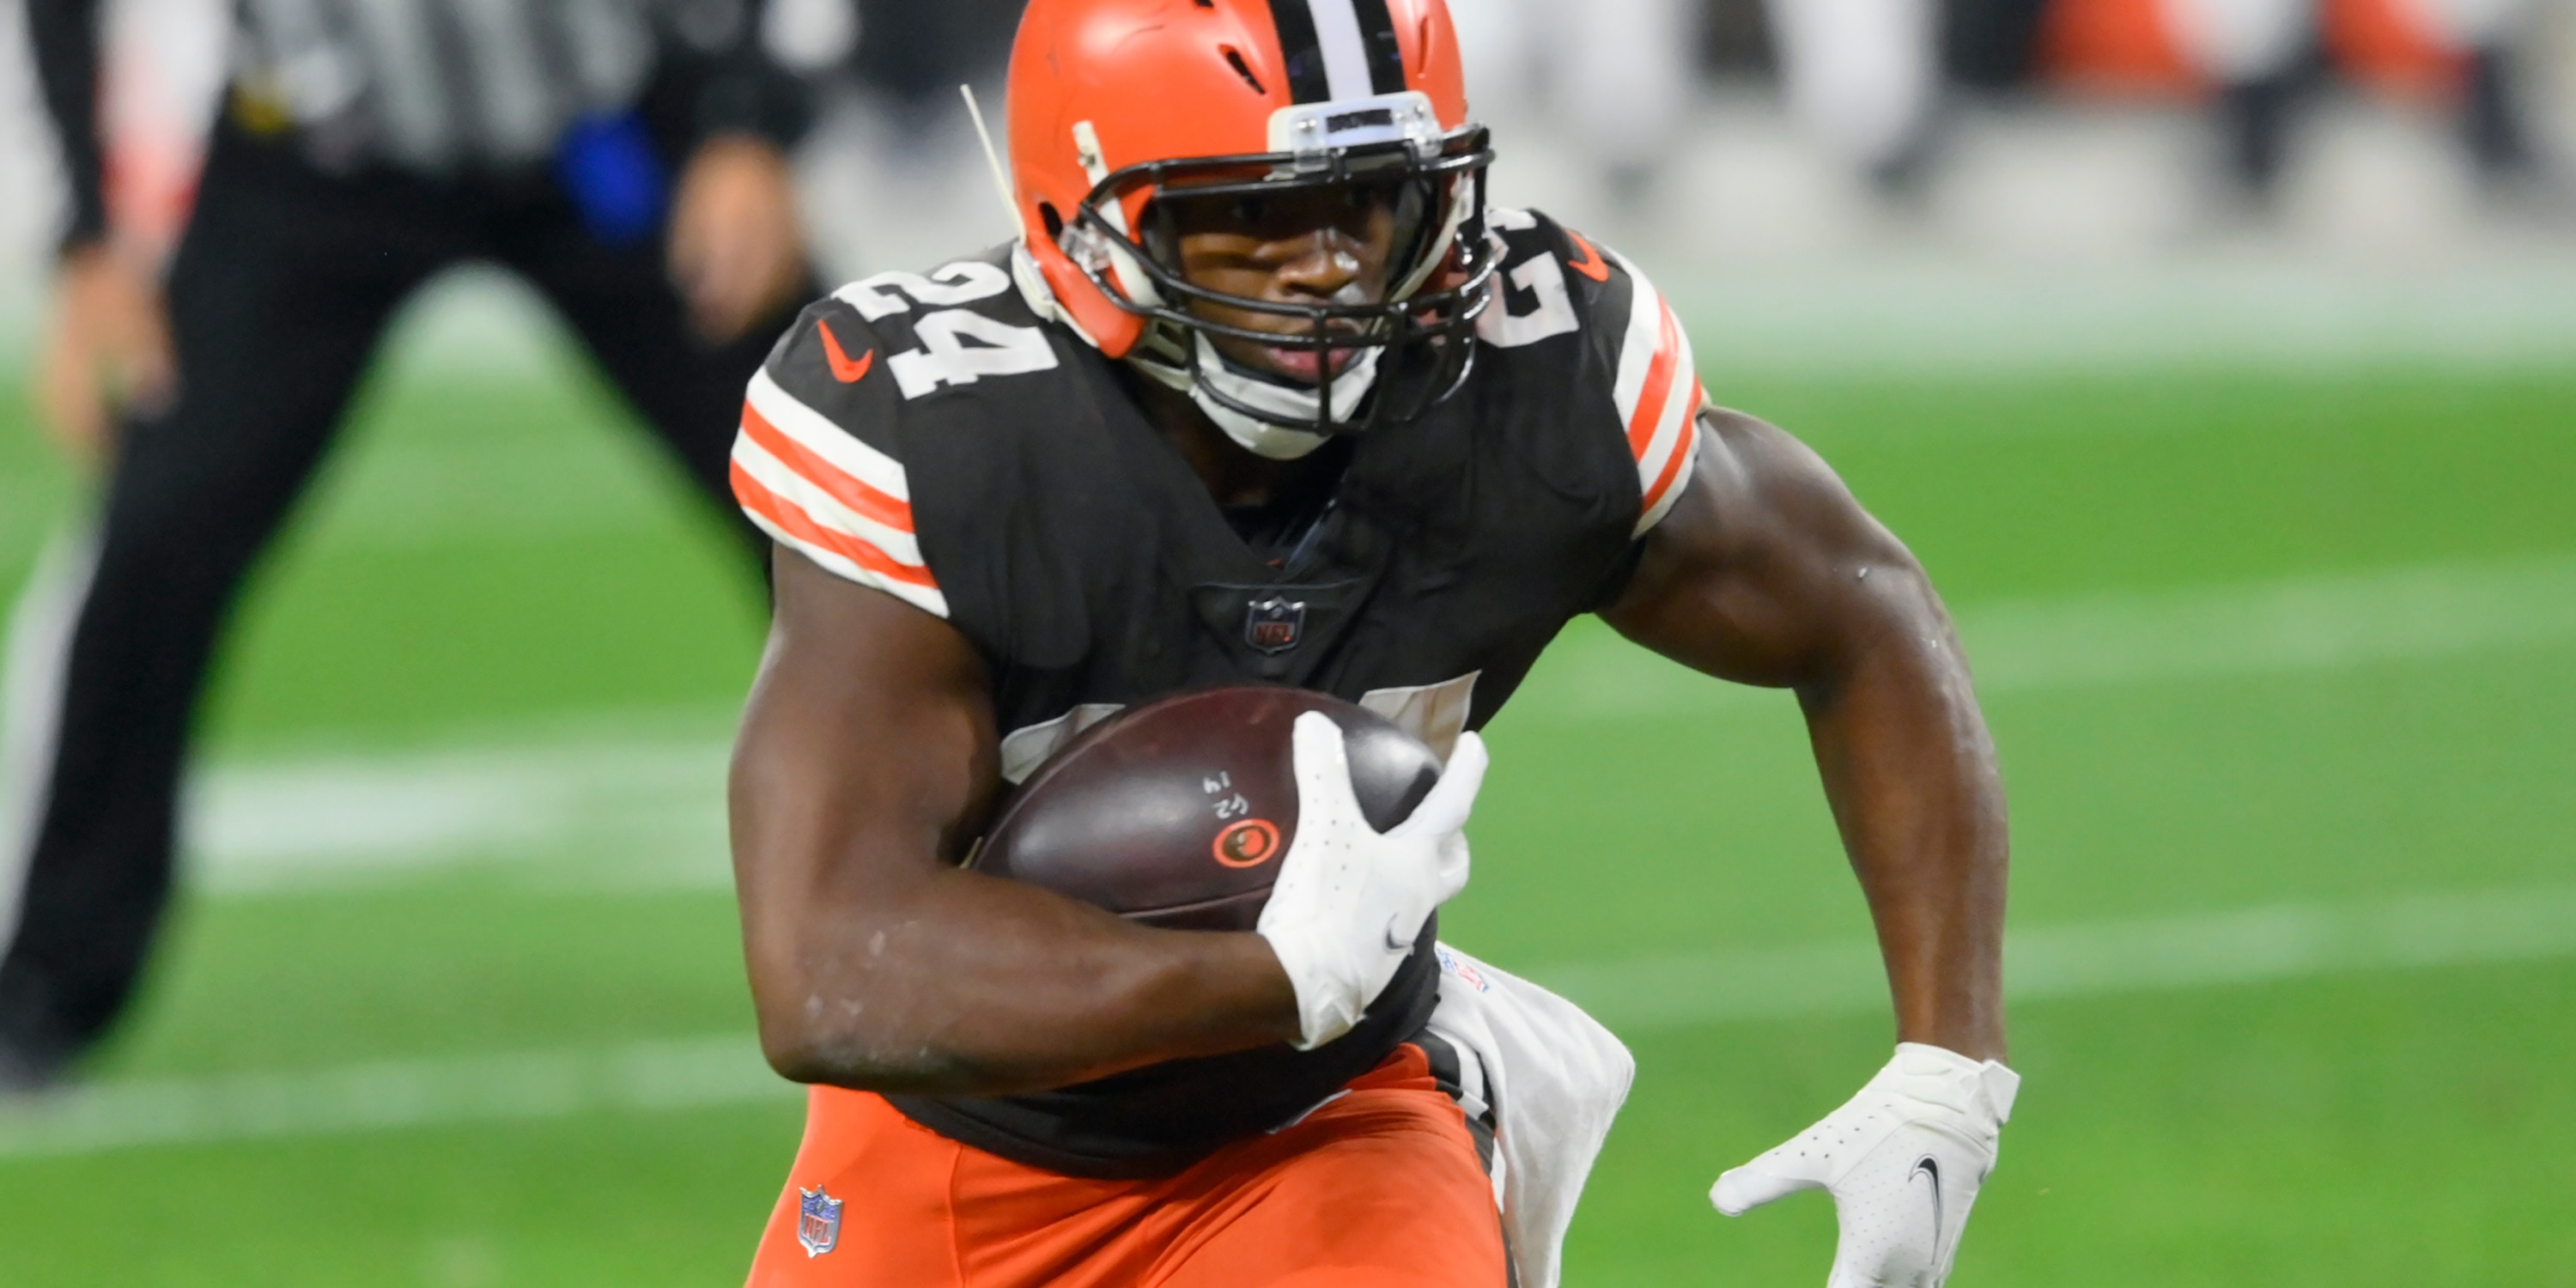 FILE - Cleveland Browns running back Nick Chubb runs with the ball in the first quarter of an NFL football game against the Cincinnati Bengals in Cleveland, in this Thursday, Sept. 17, 2020, file photo. (AP Photo/David Richard, File)